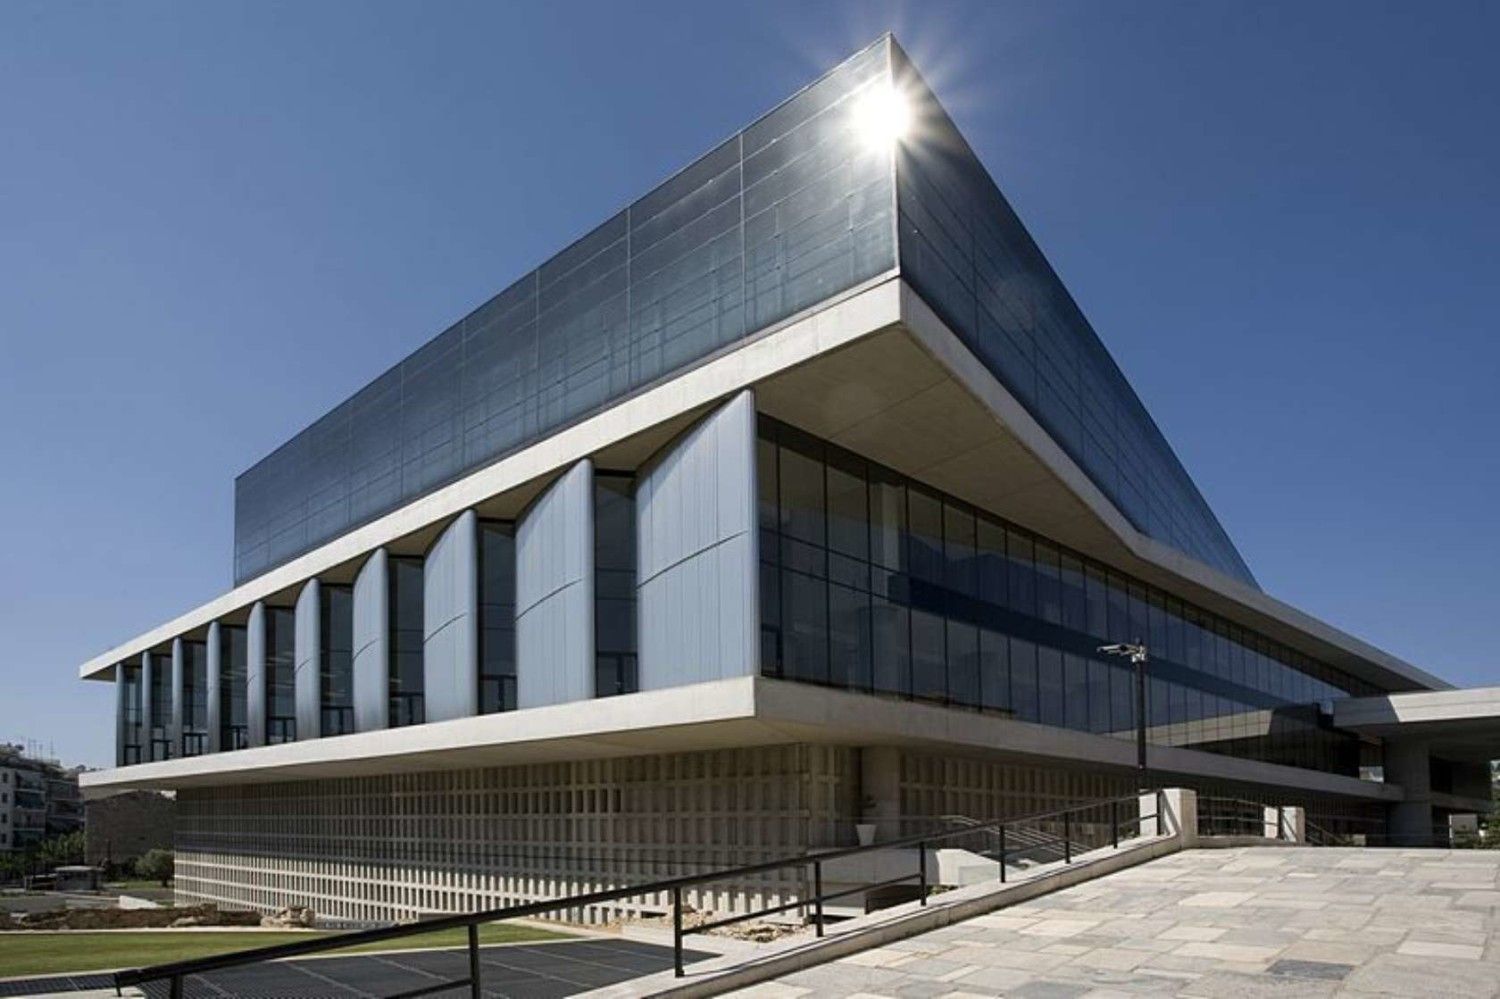 The Acropolis Museum di Atena (Sumber: architizer.com)